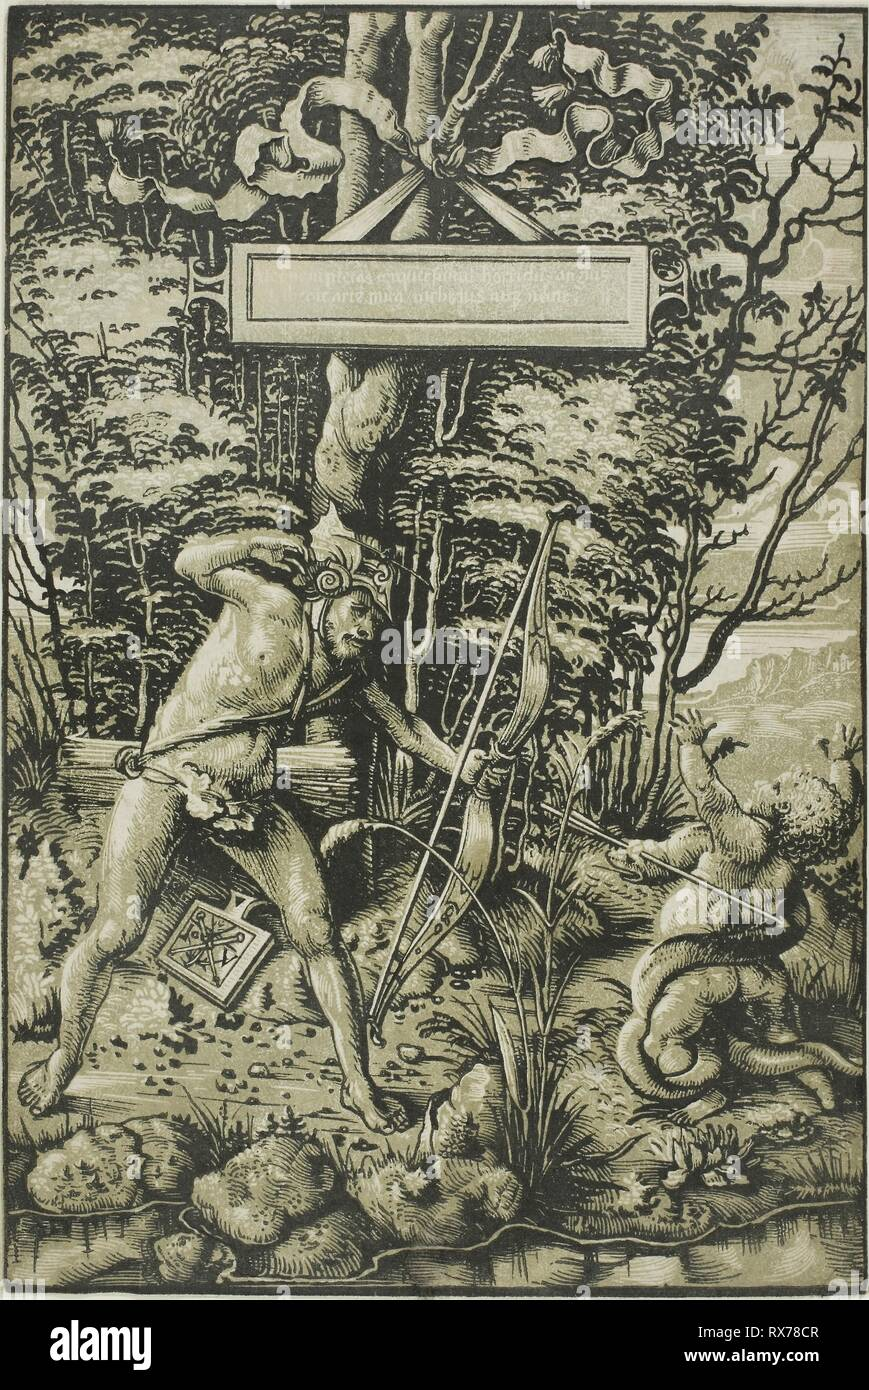 Alcon Slaying the Serpent. Hans Wechtlin, I; German, 1480/85-after 1526. Date: 1510-1515. Dimensions: 274 x 183 mm (image/block/sheet). Chiaroscuro woodcut printed from two blocks in black and olive green on cream laid paper. Origin: Germany. Museum: The Chicago Art Institute. - Stock Image